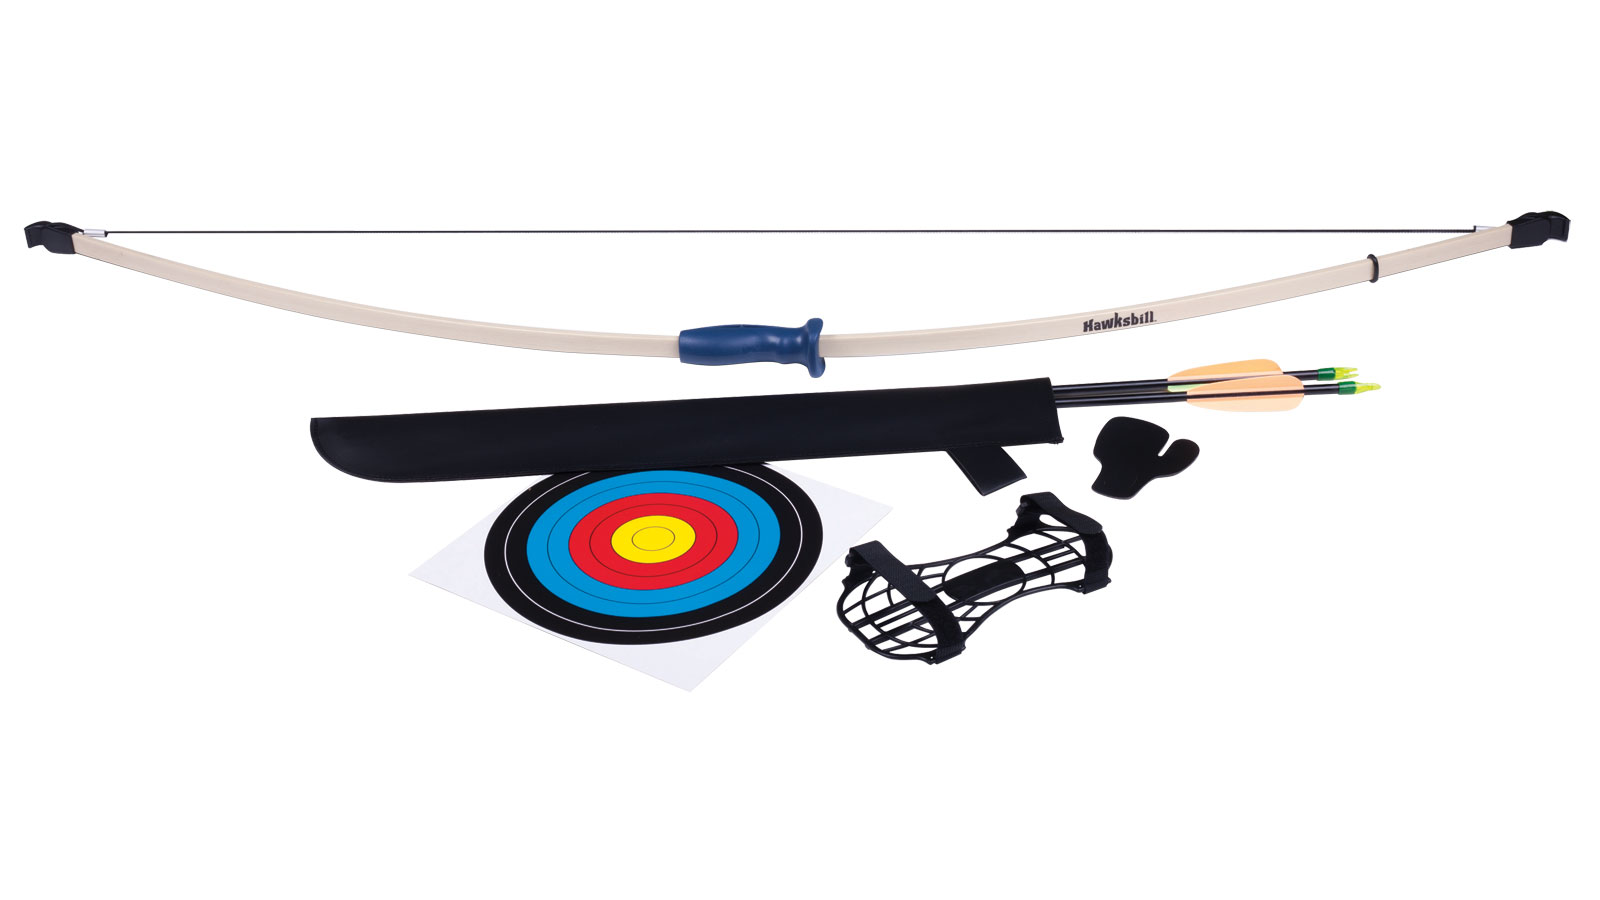 Crosman HAWKSBILL LONG BOW KIT